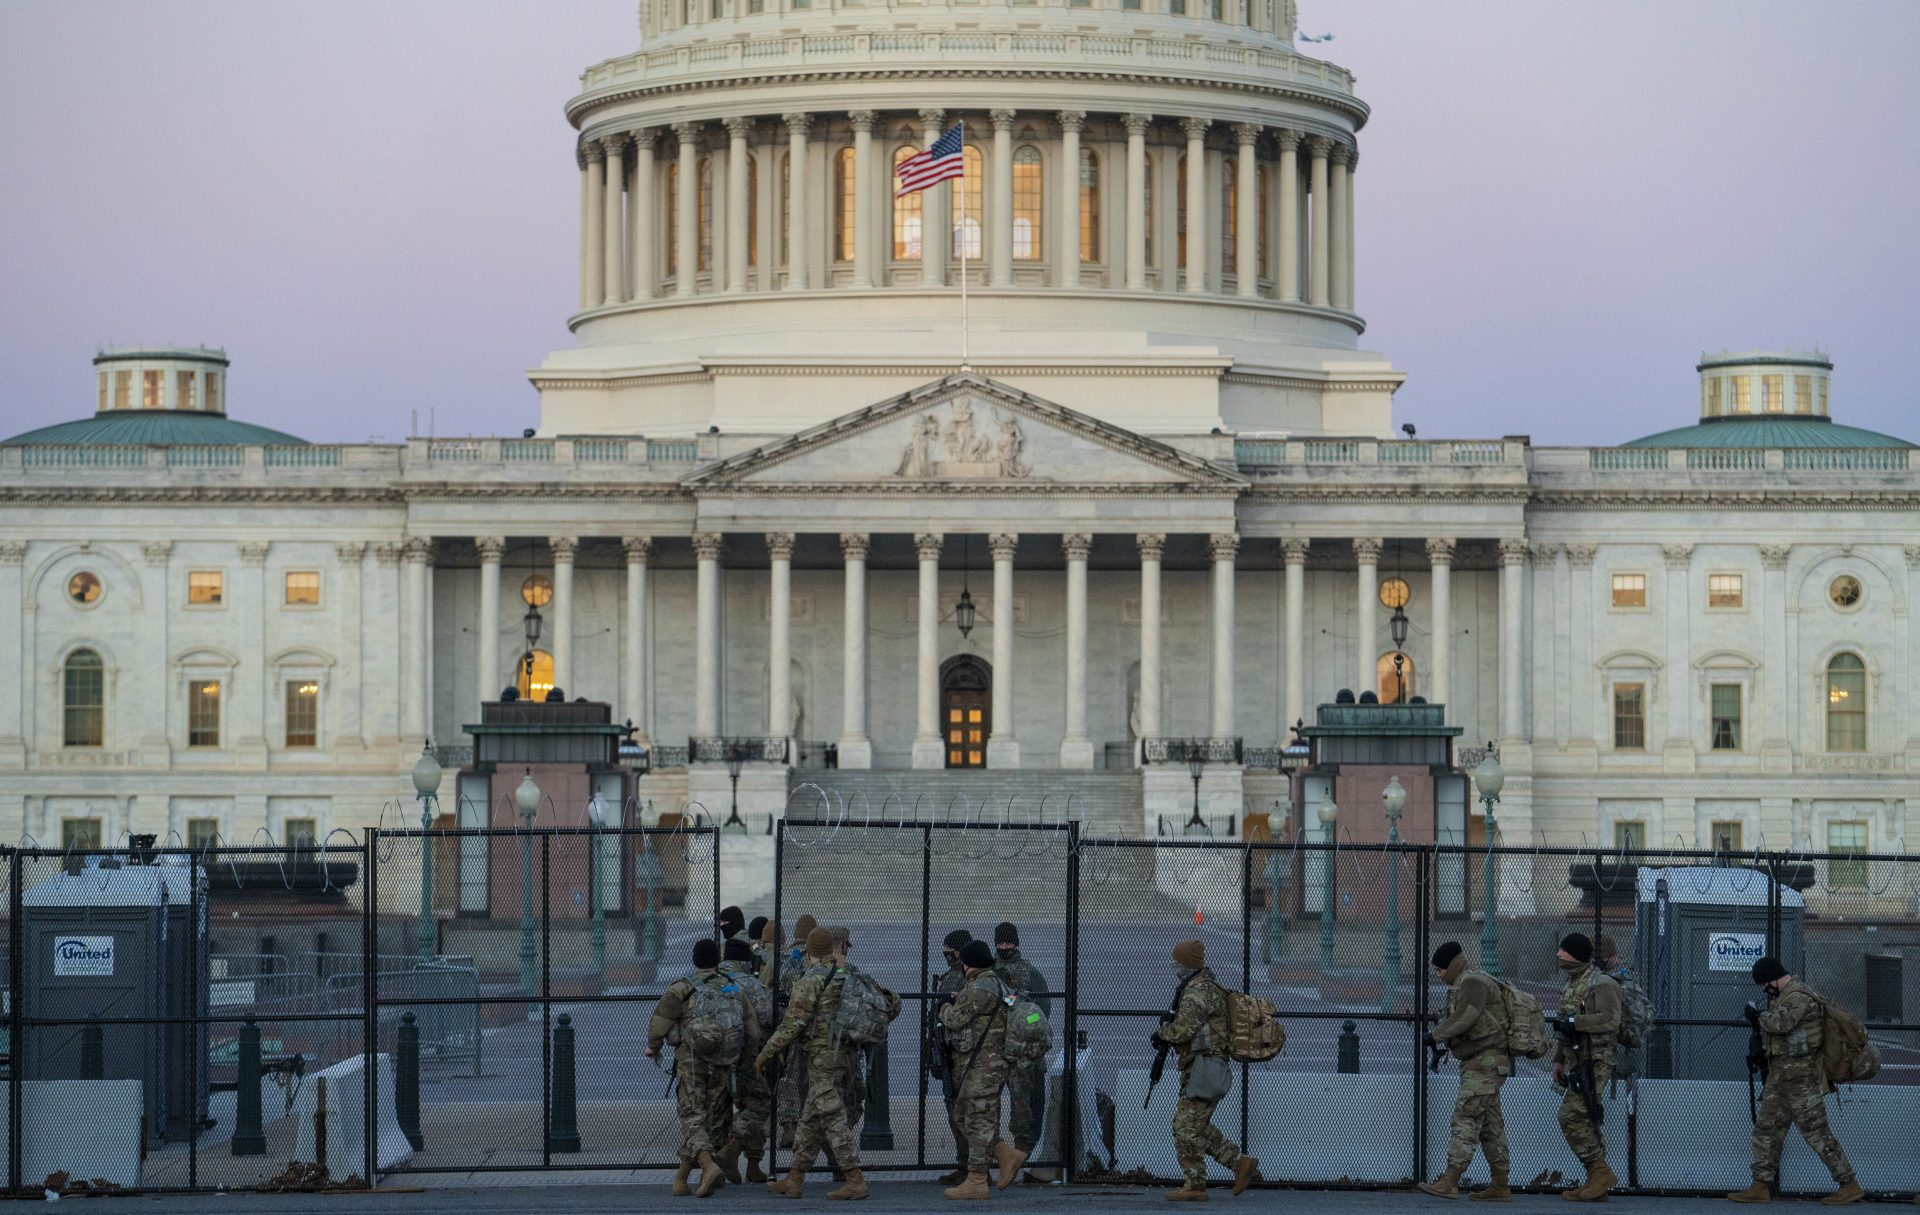 Members of the National Guard walk beside barbed wire fencing on U.S. Capitol grounds at sunrise on Monday ahead of Tuesday's Senate impeachment trial.